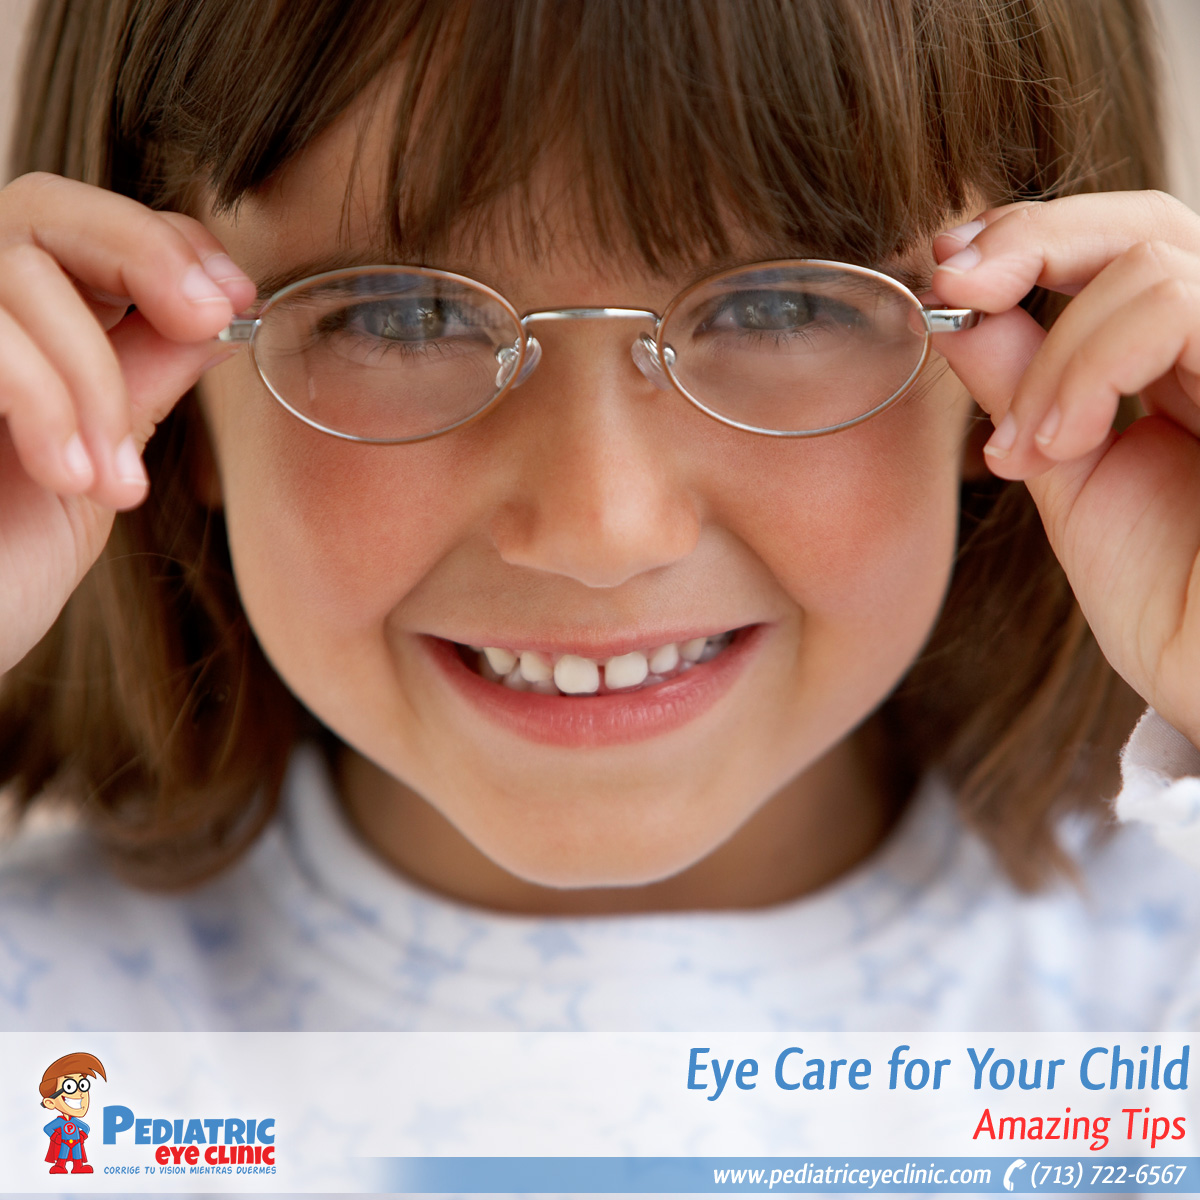 25-eye-care-for-your-child